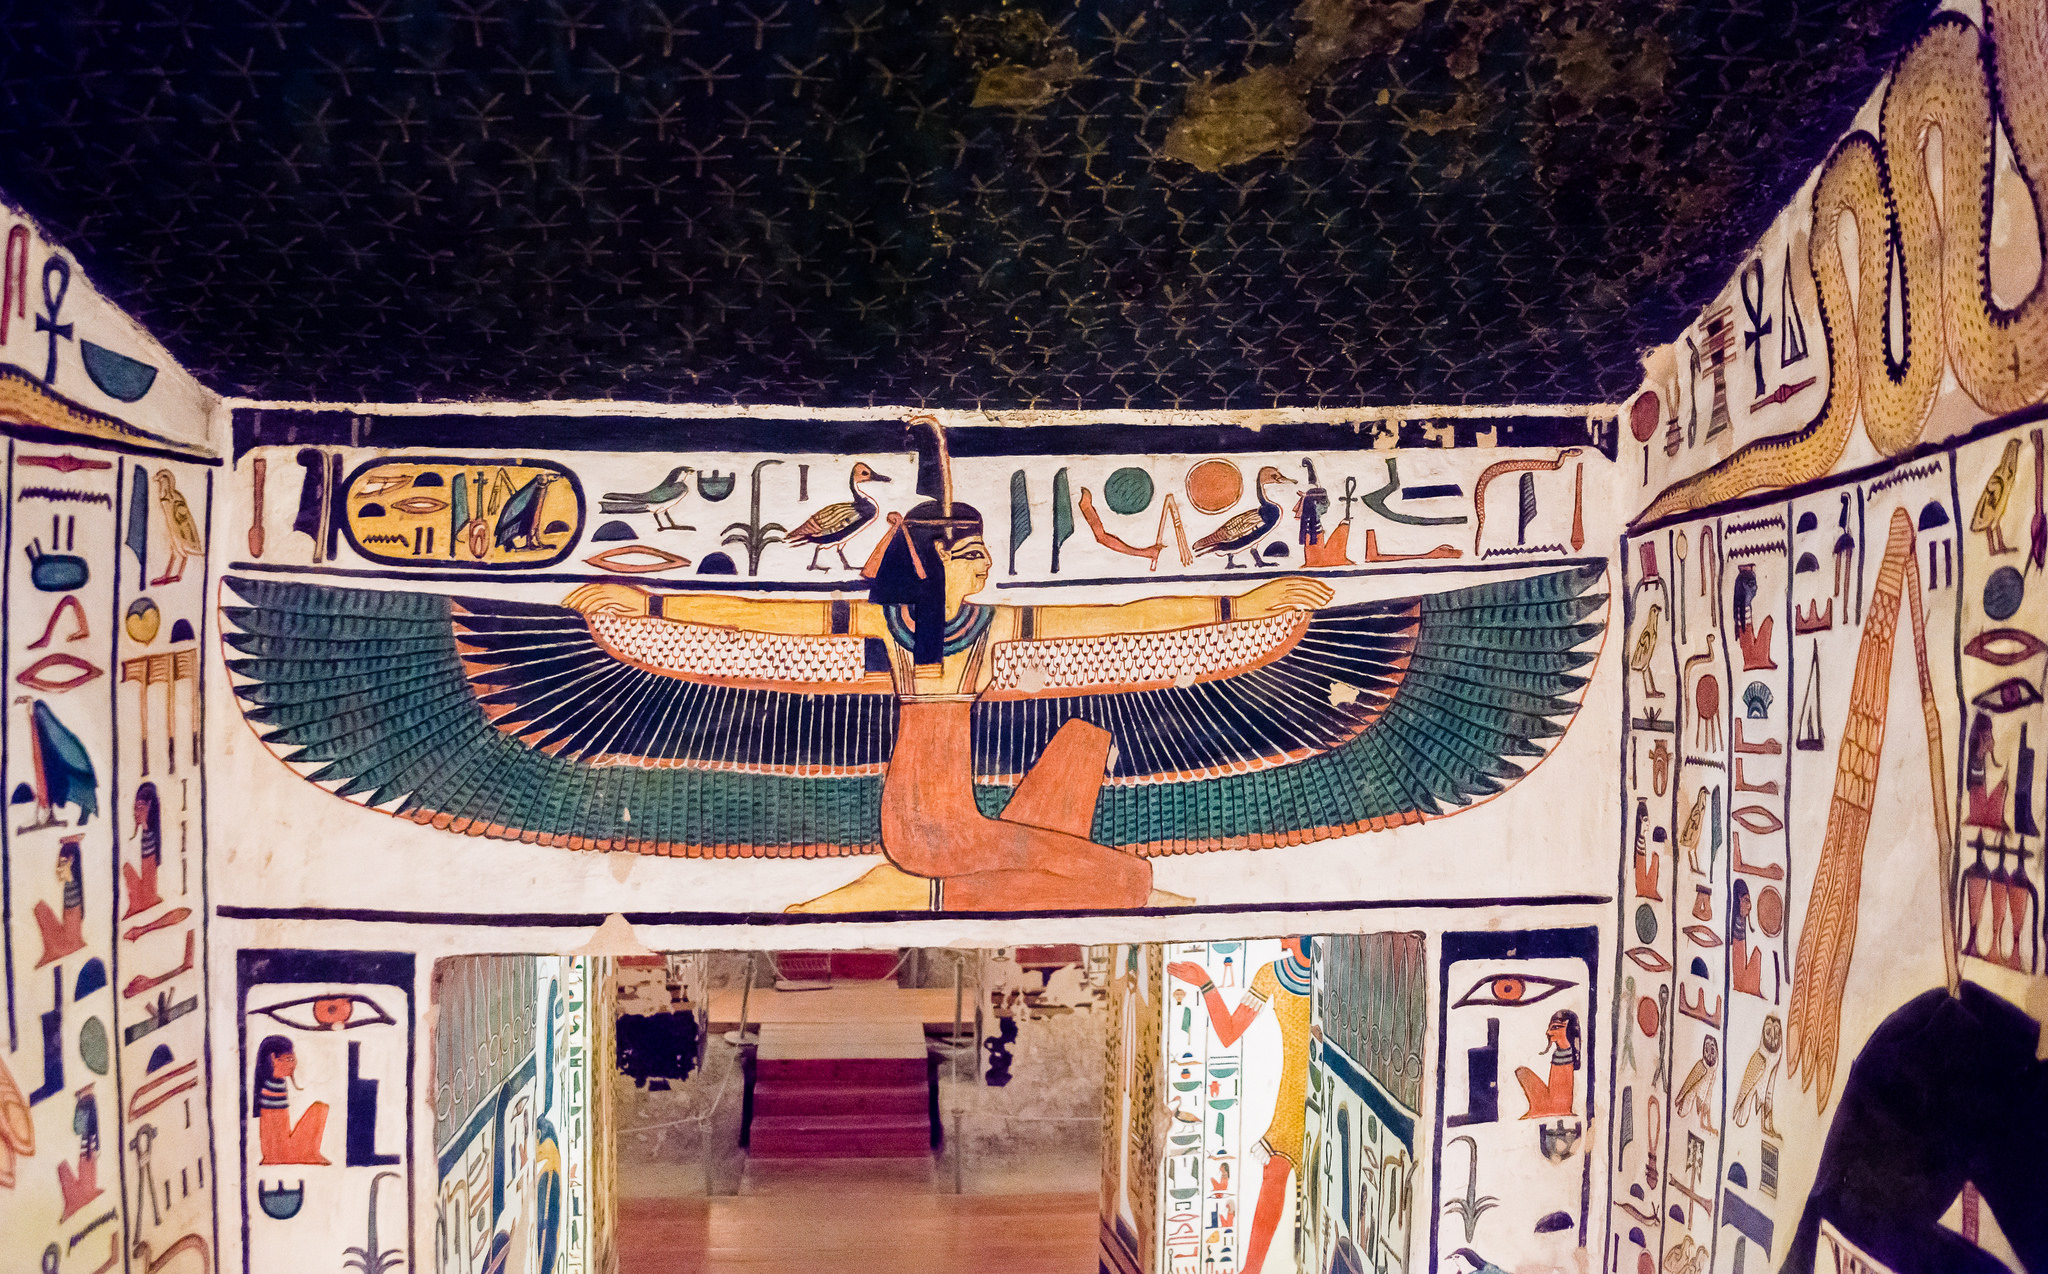 Nefertari spreads her wings and says WELCOME! This image comes from the entrance to her fabulous tomb. Courtesy of kairoinfo4u on Flickr.